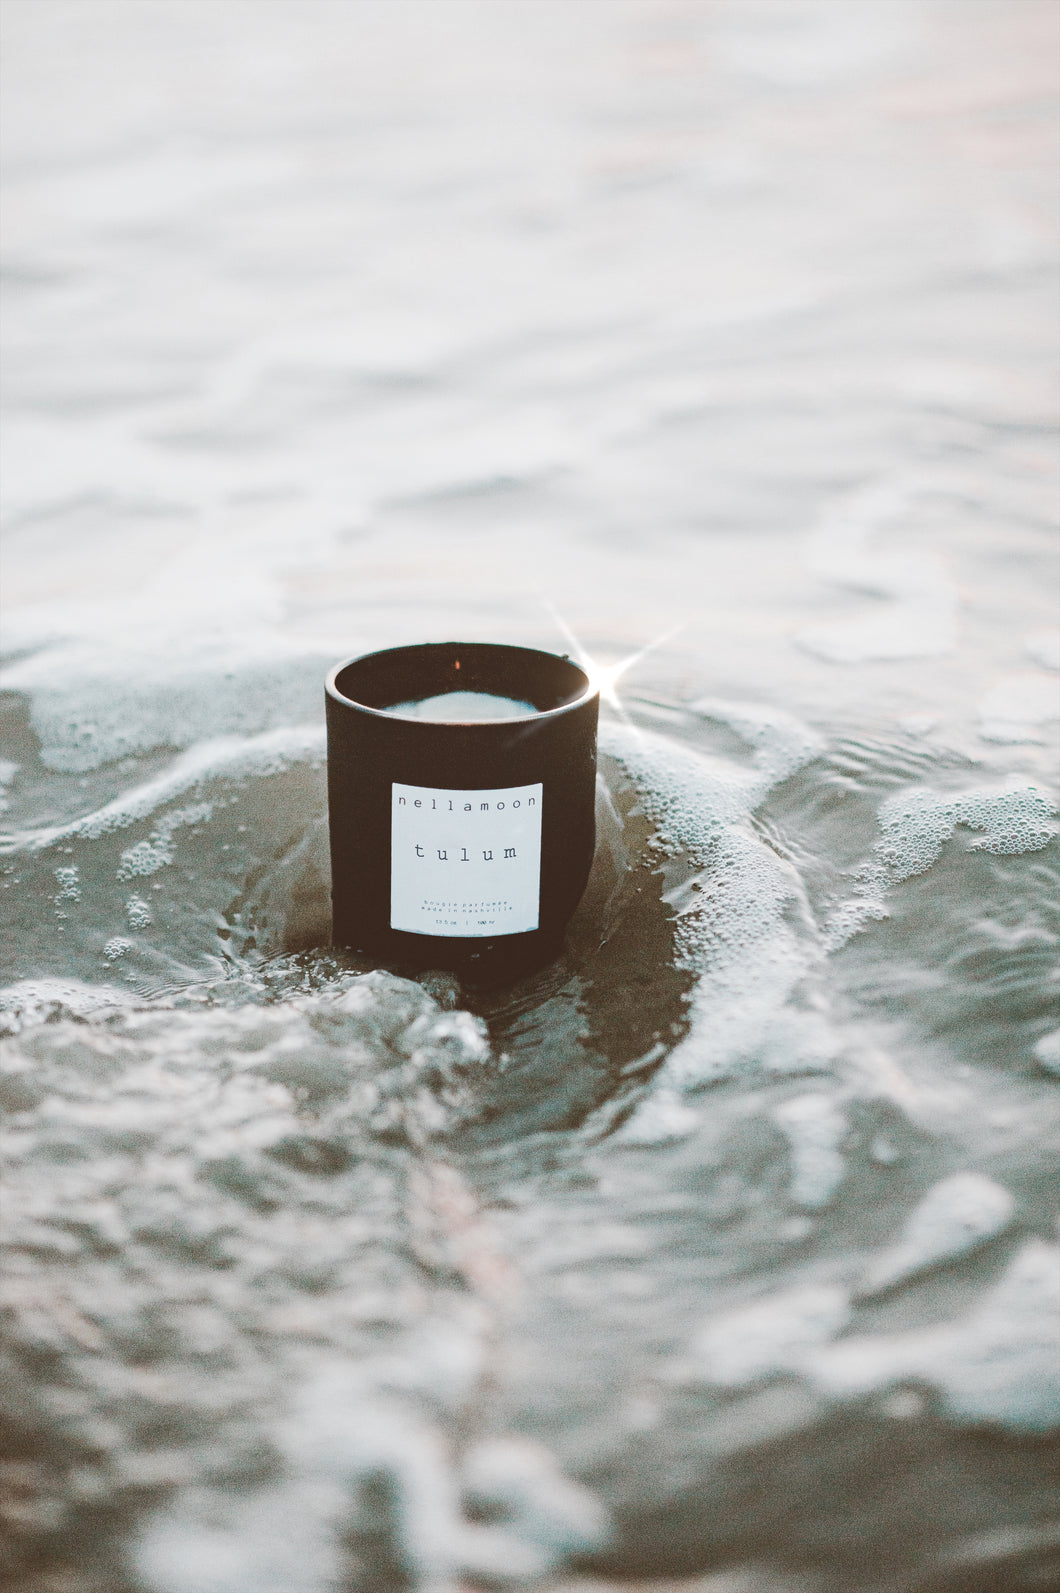 ☆ new ☆ tulum: smooth masculine notes, amber, sandalwood, musk